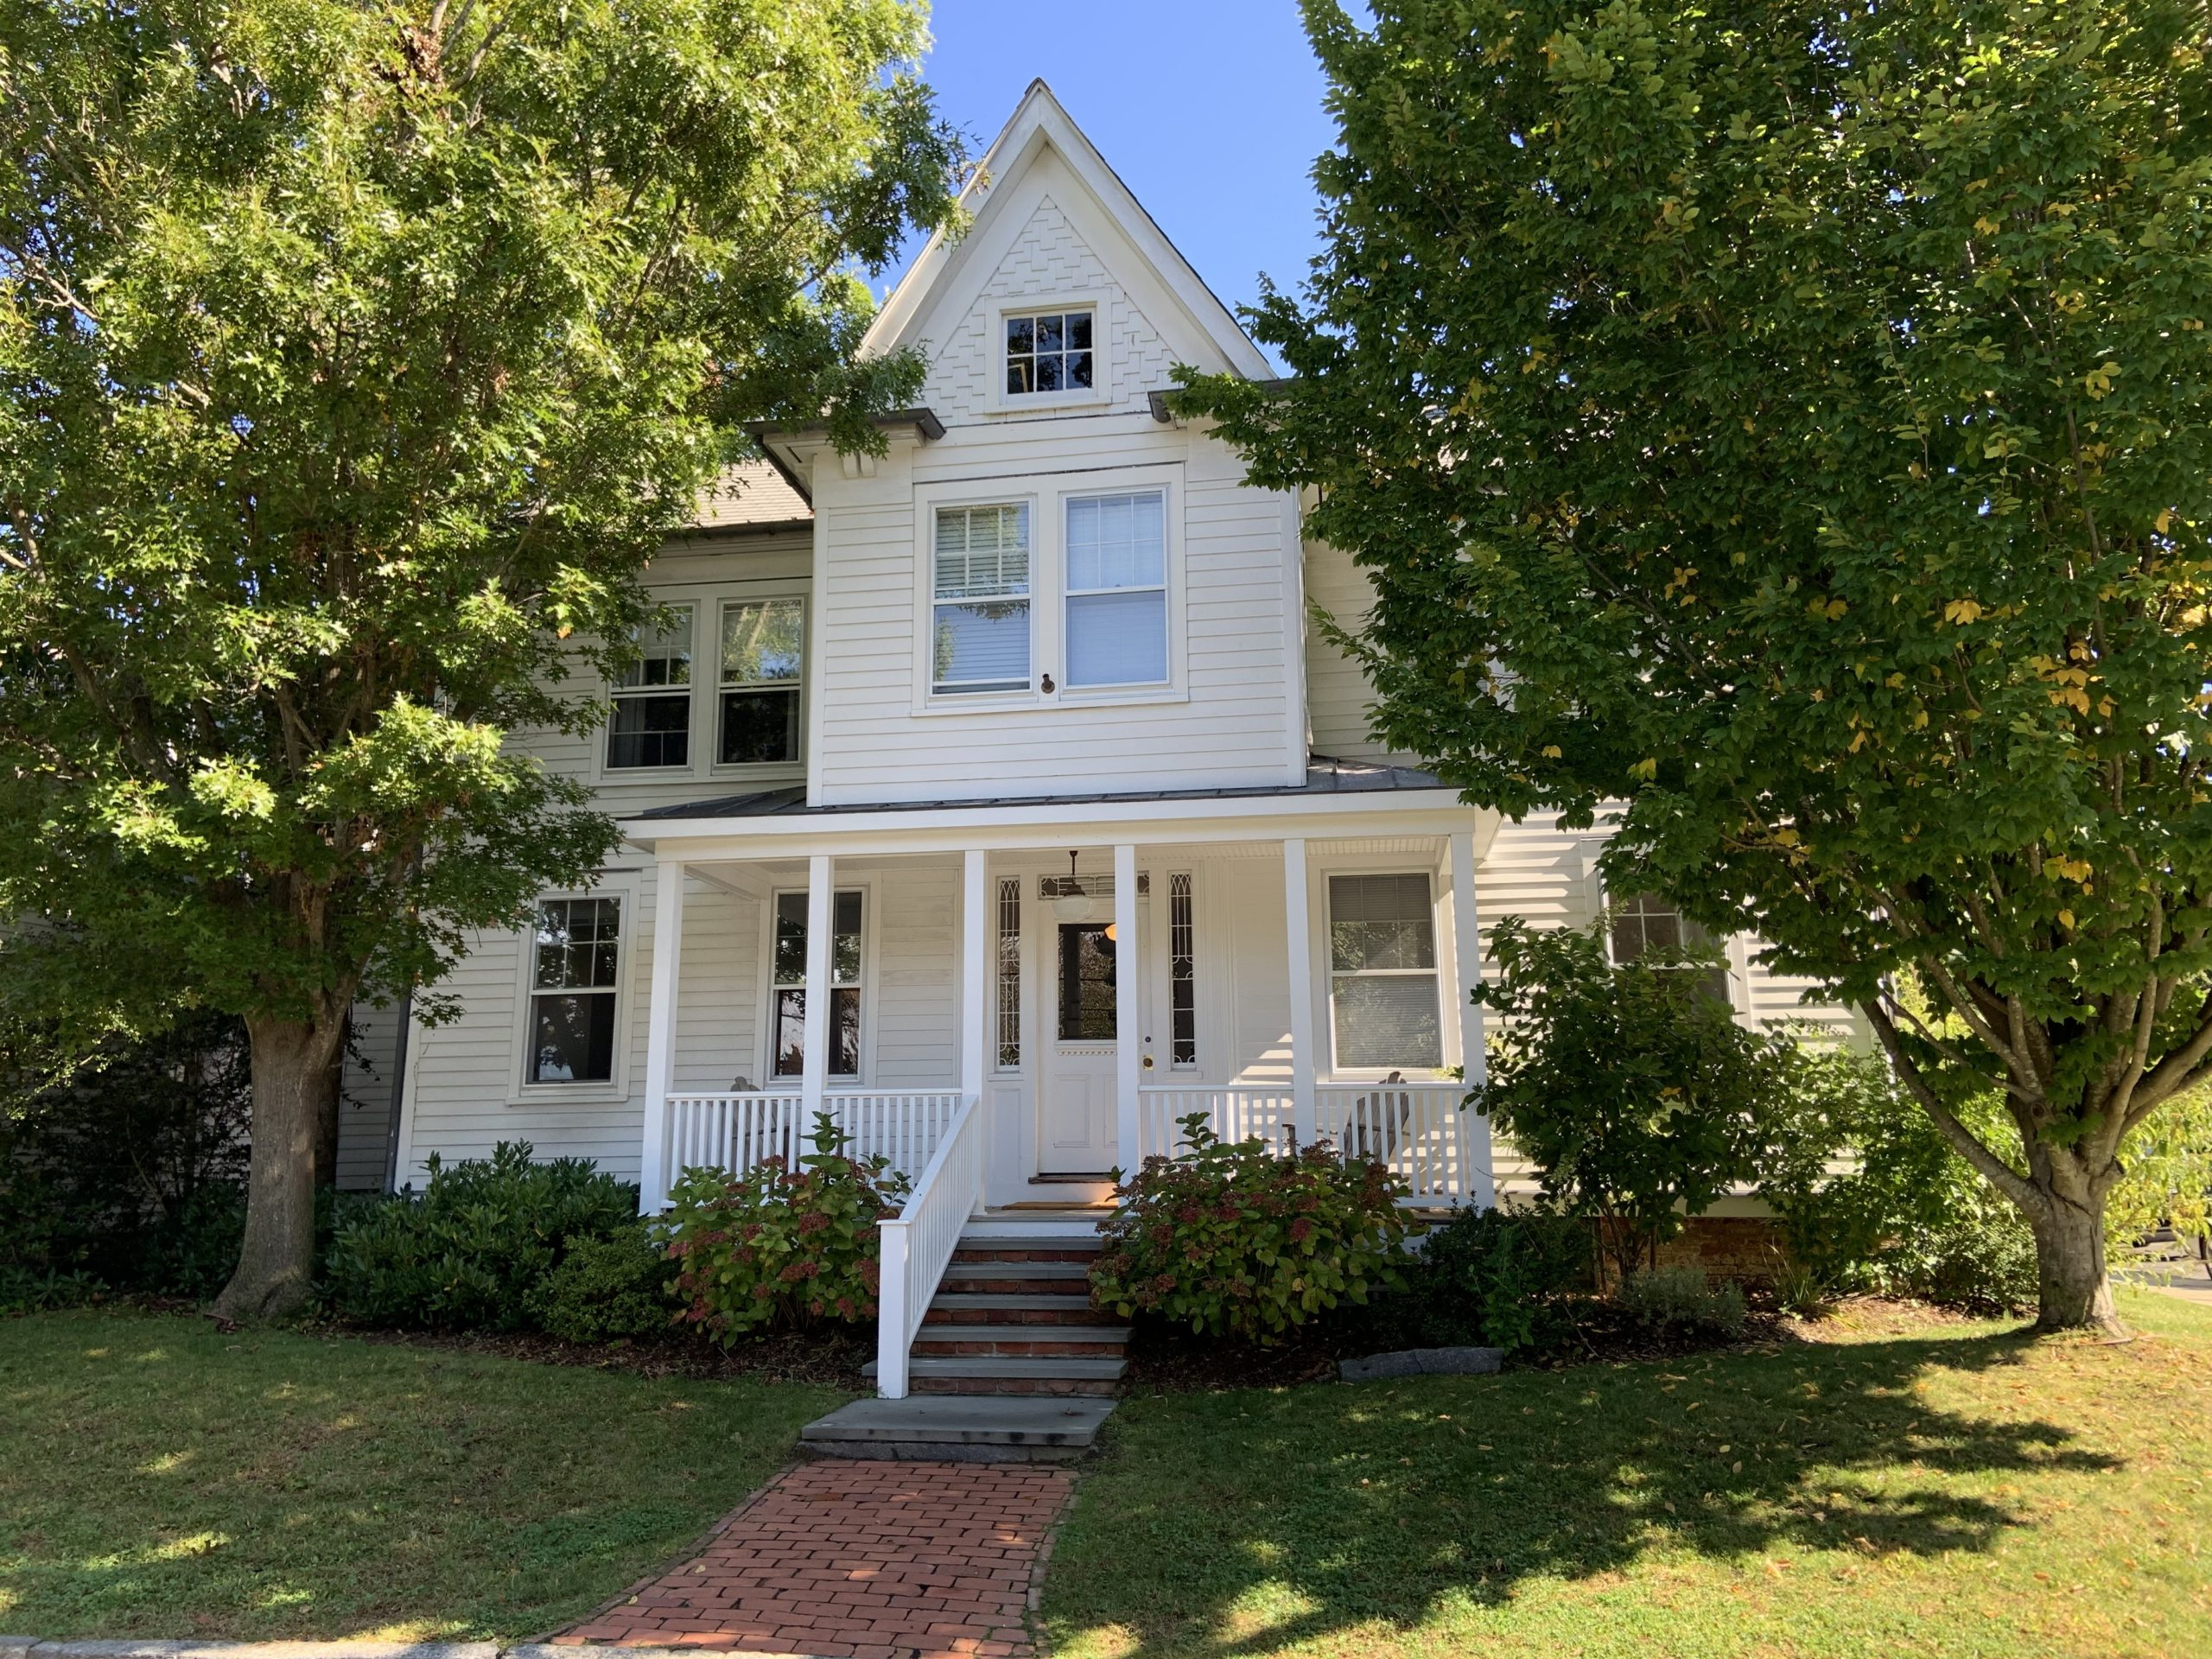 The Sag Harbor Cinema has purchased this house with six apartments at 11 Suffolk Street for employee housing. STEPHEN J. KOTZ